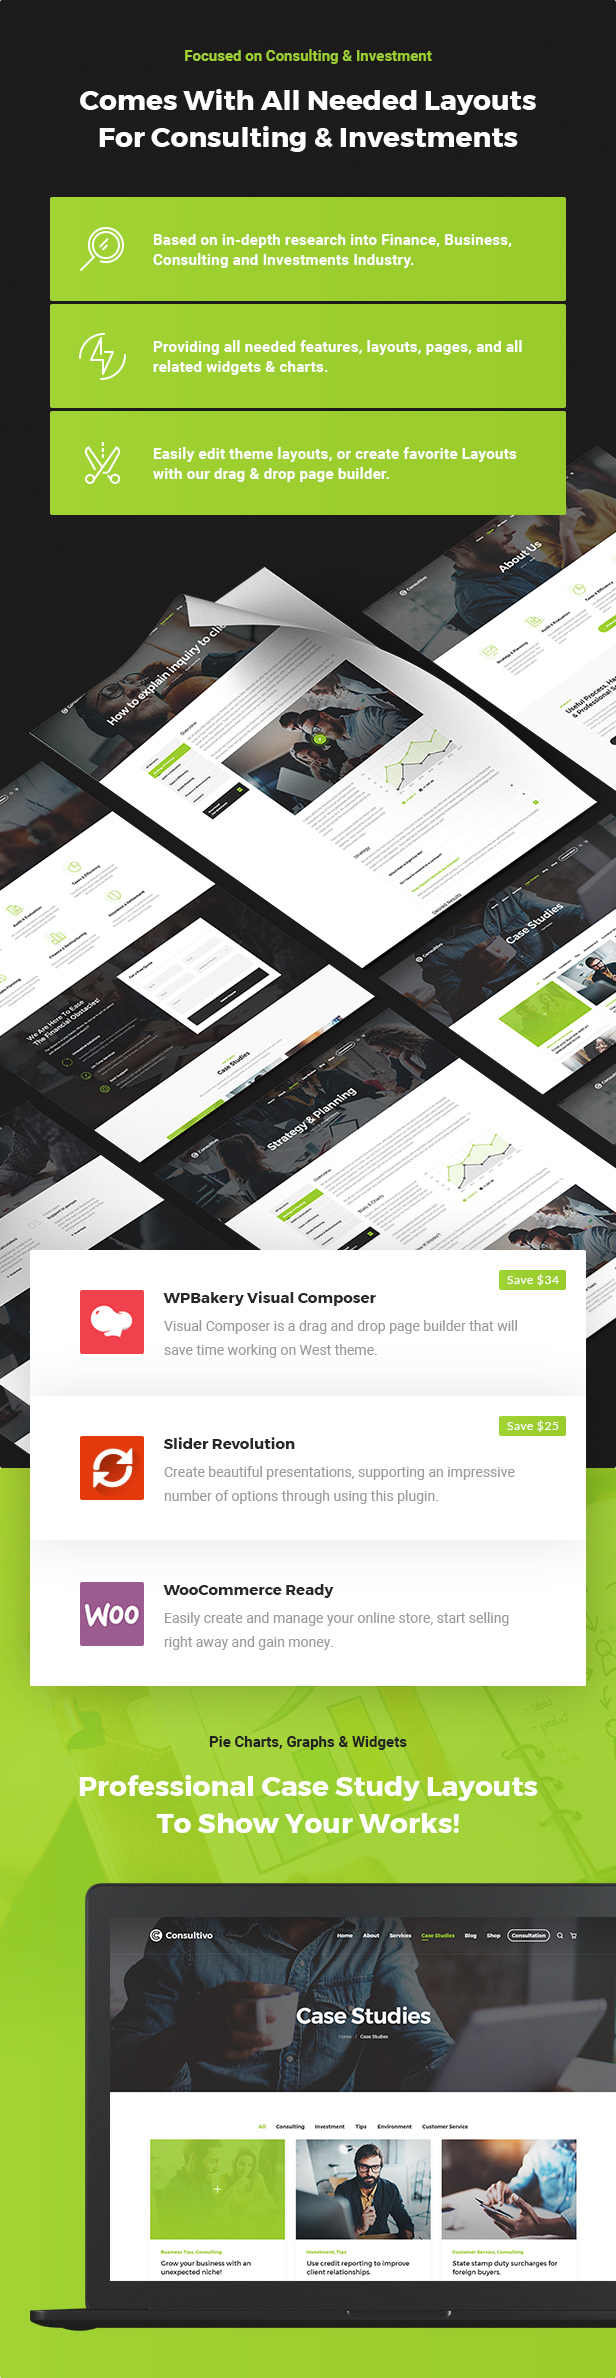 Consultivo - Business Consulting and Investments WordPress Theme - 6